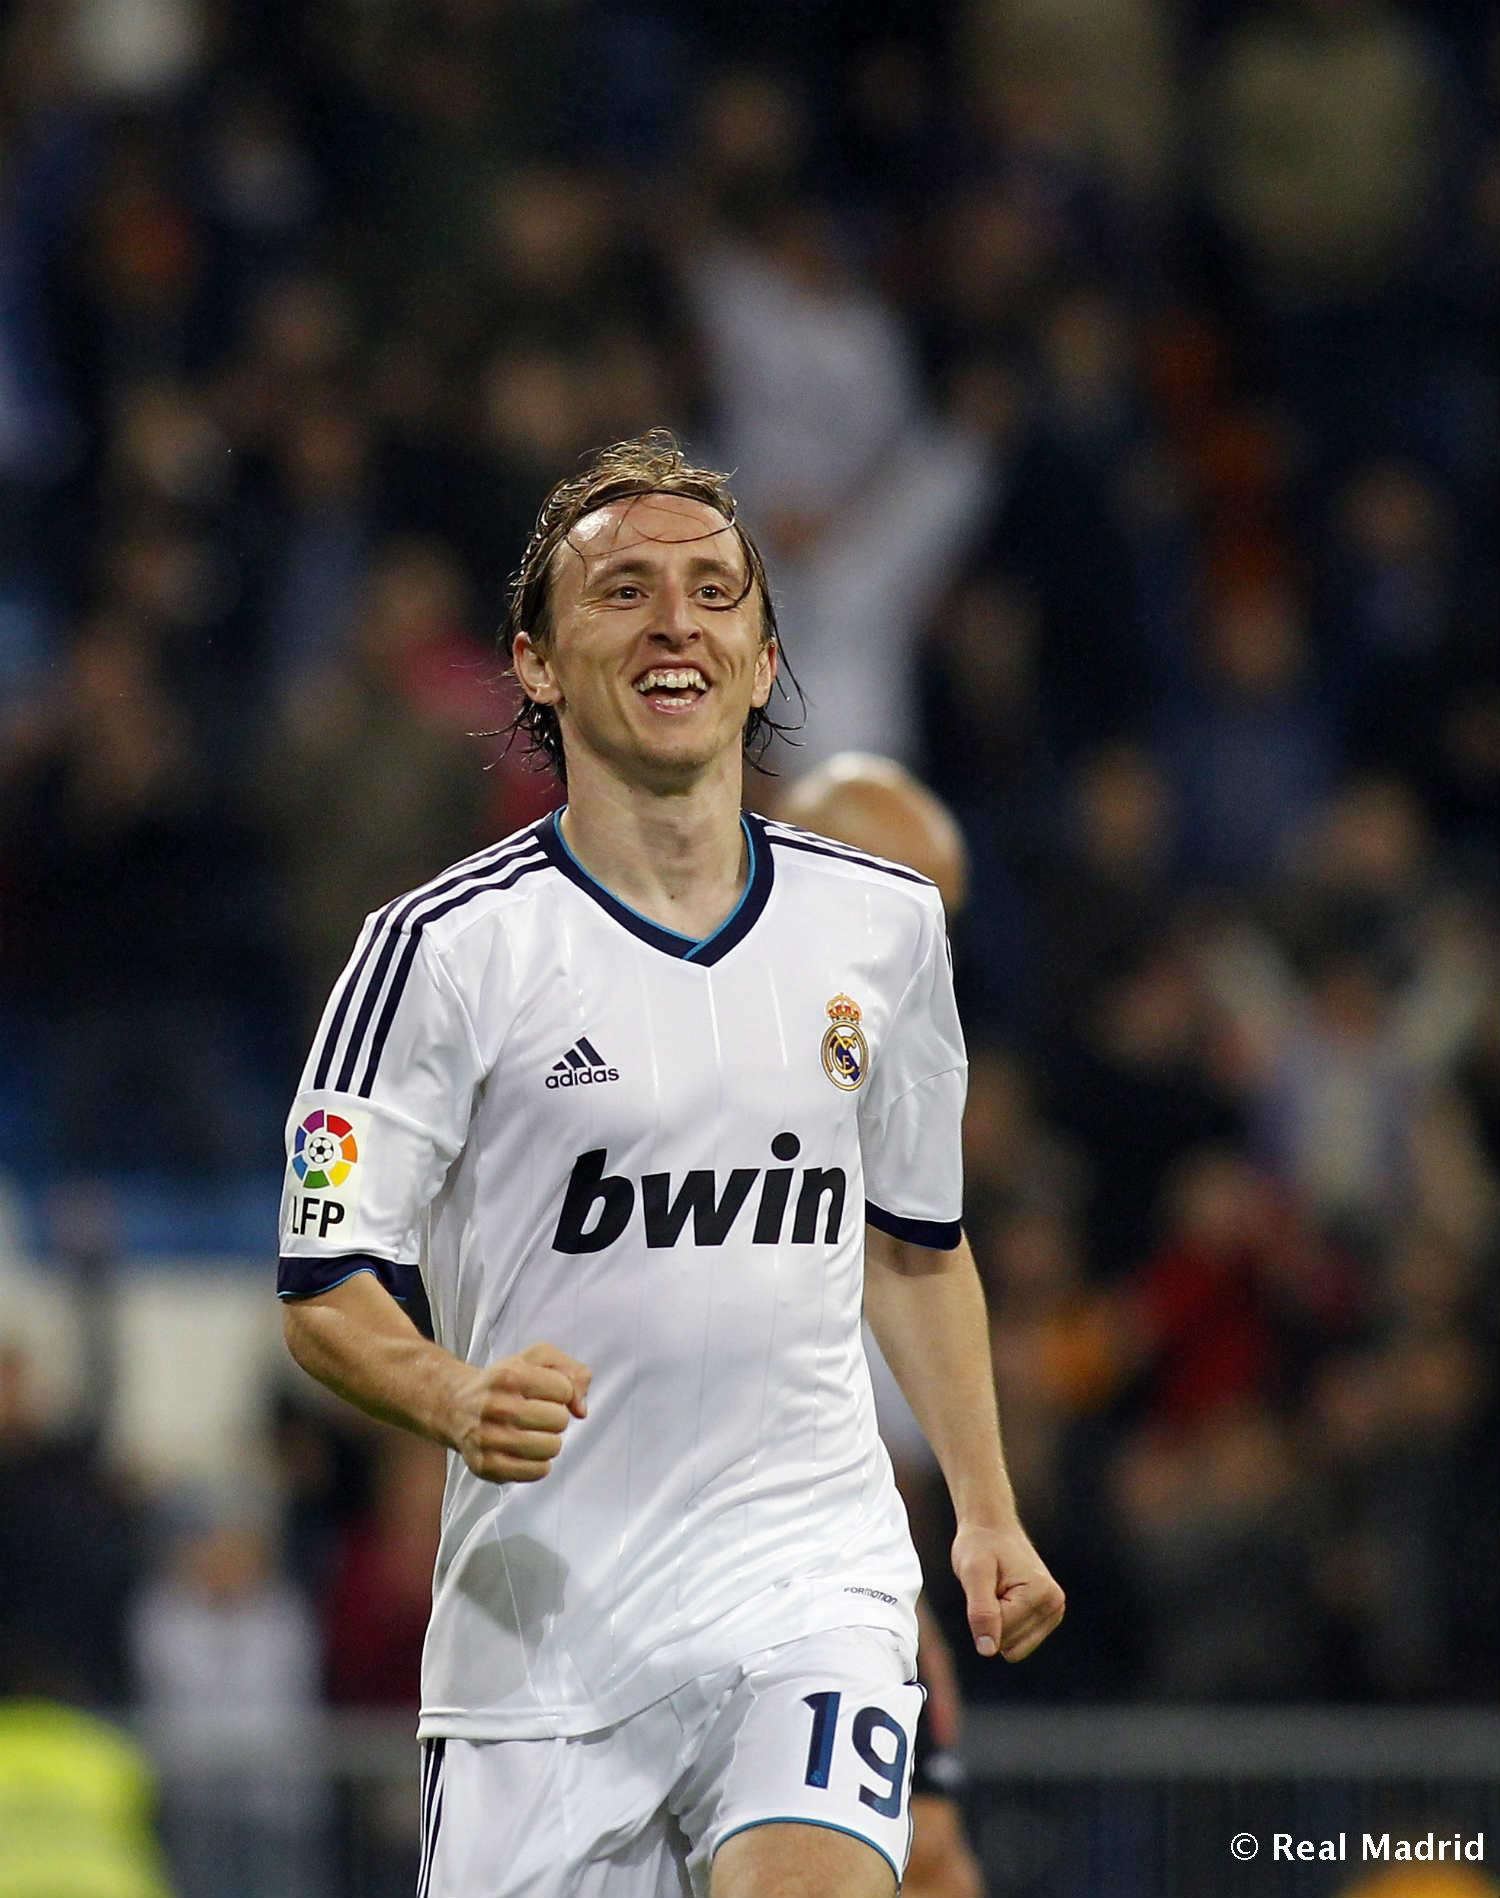 Real Madrid - Modric - 27-01-2014